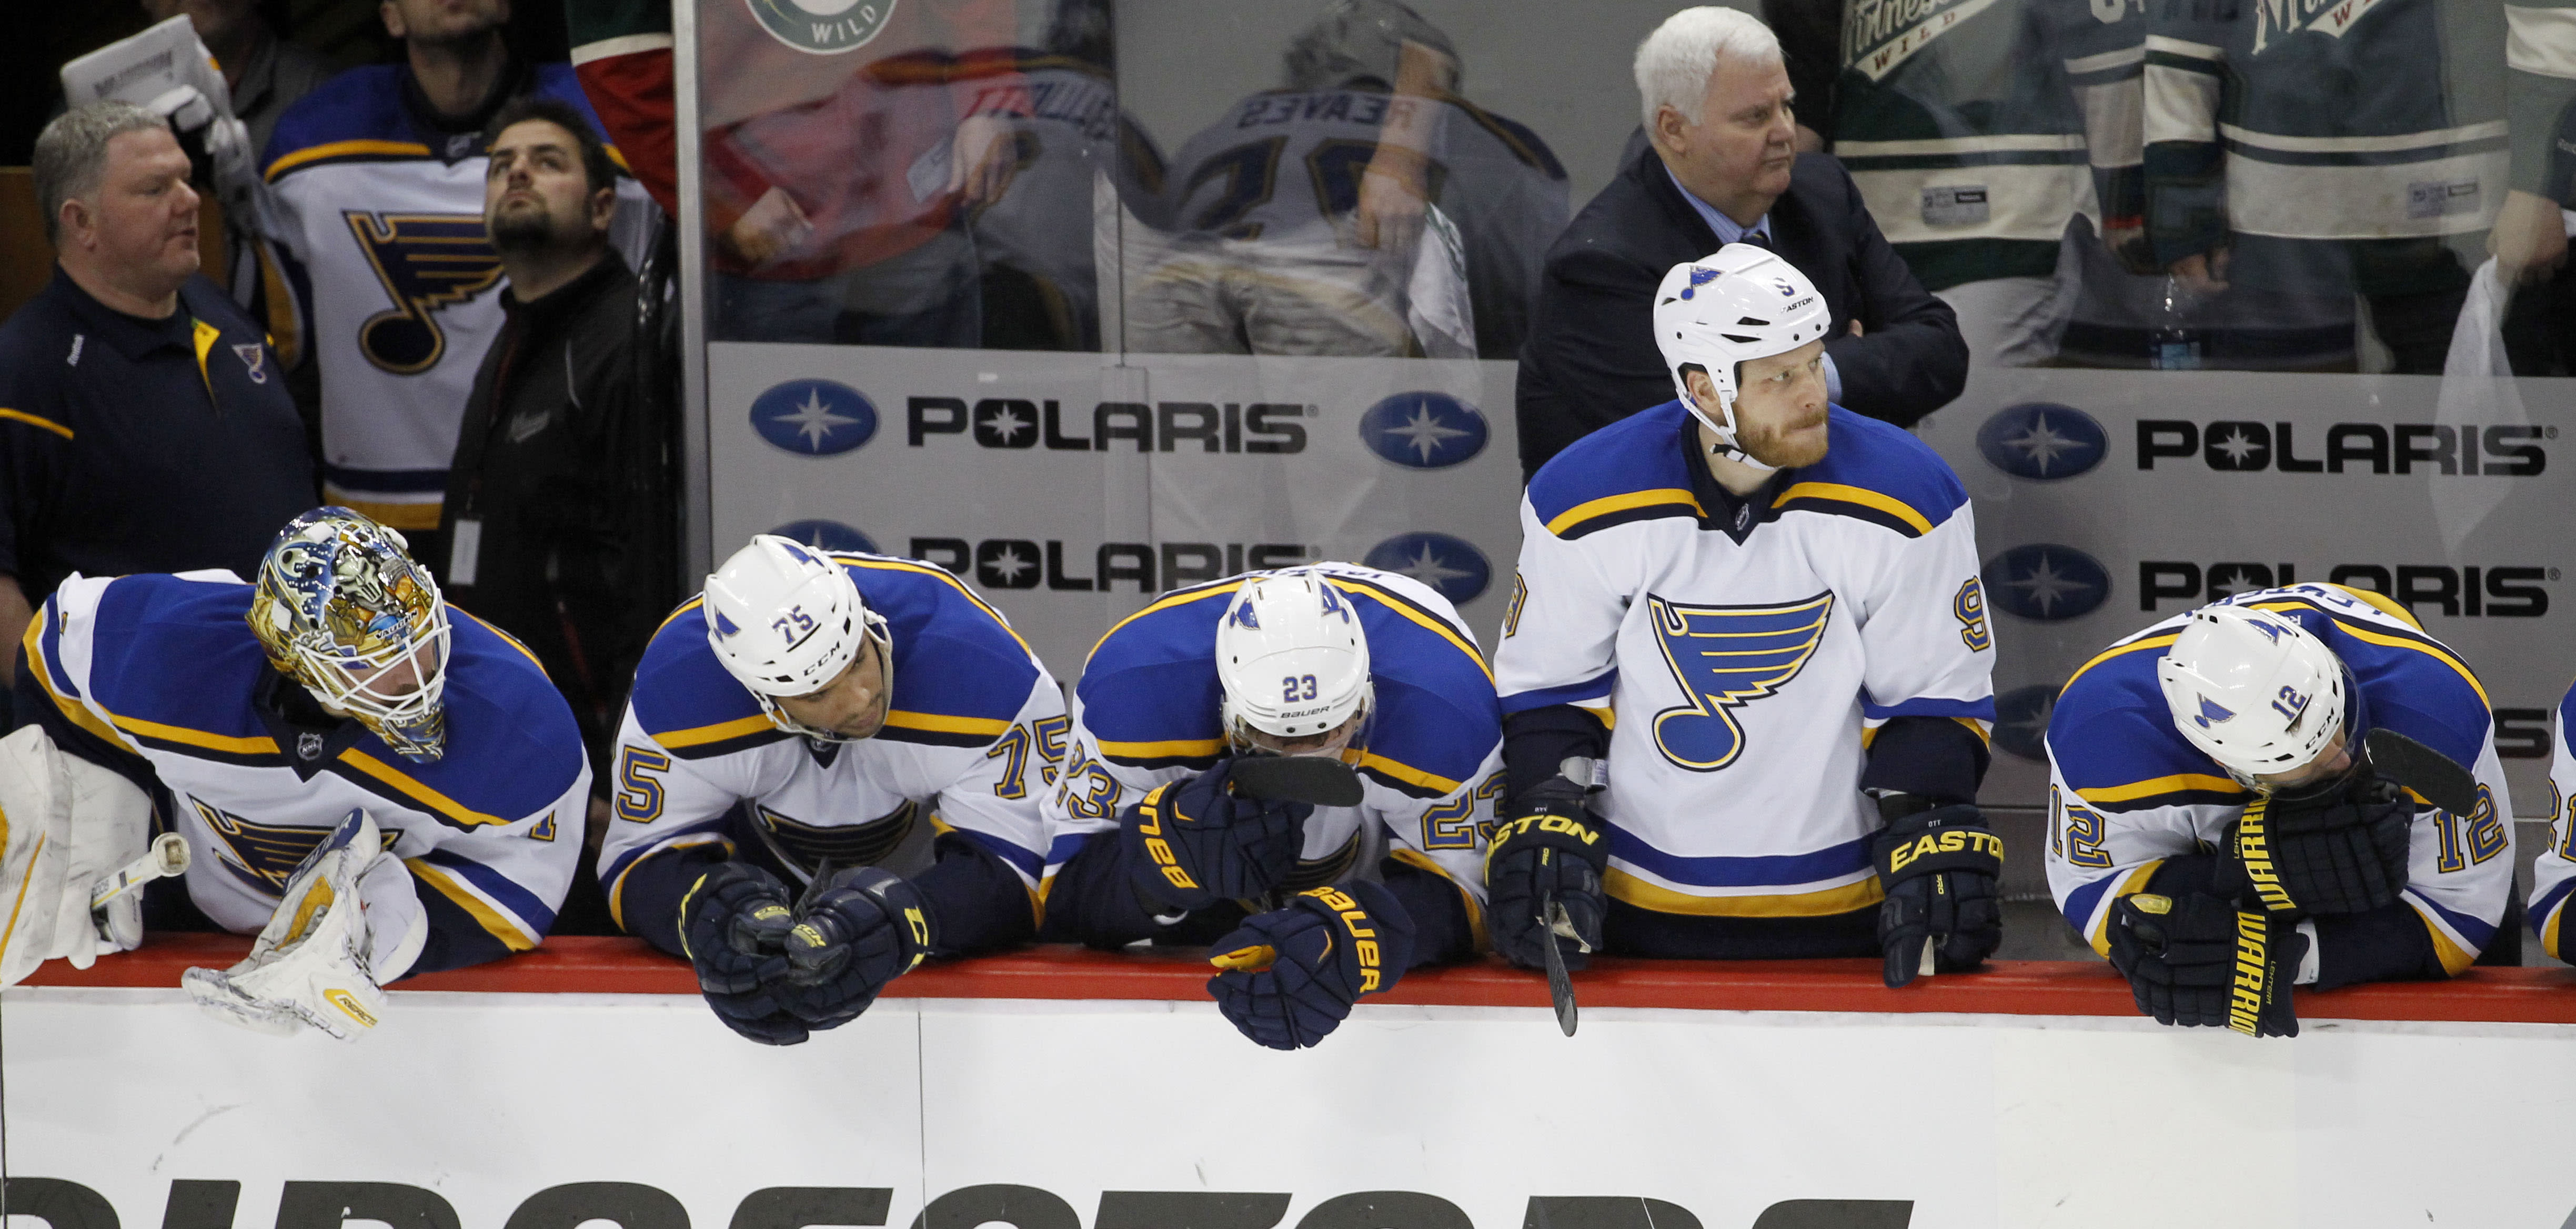 For third straight year, St. Louis Blues make an early exit